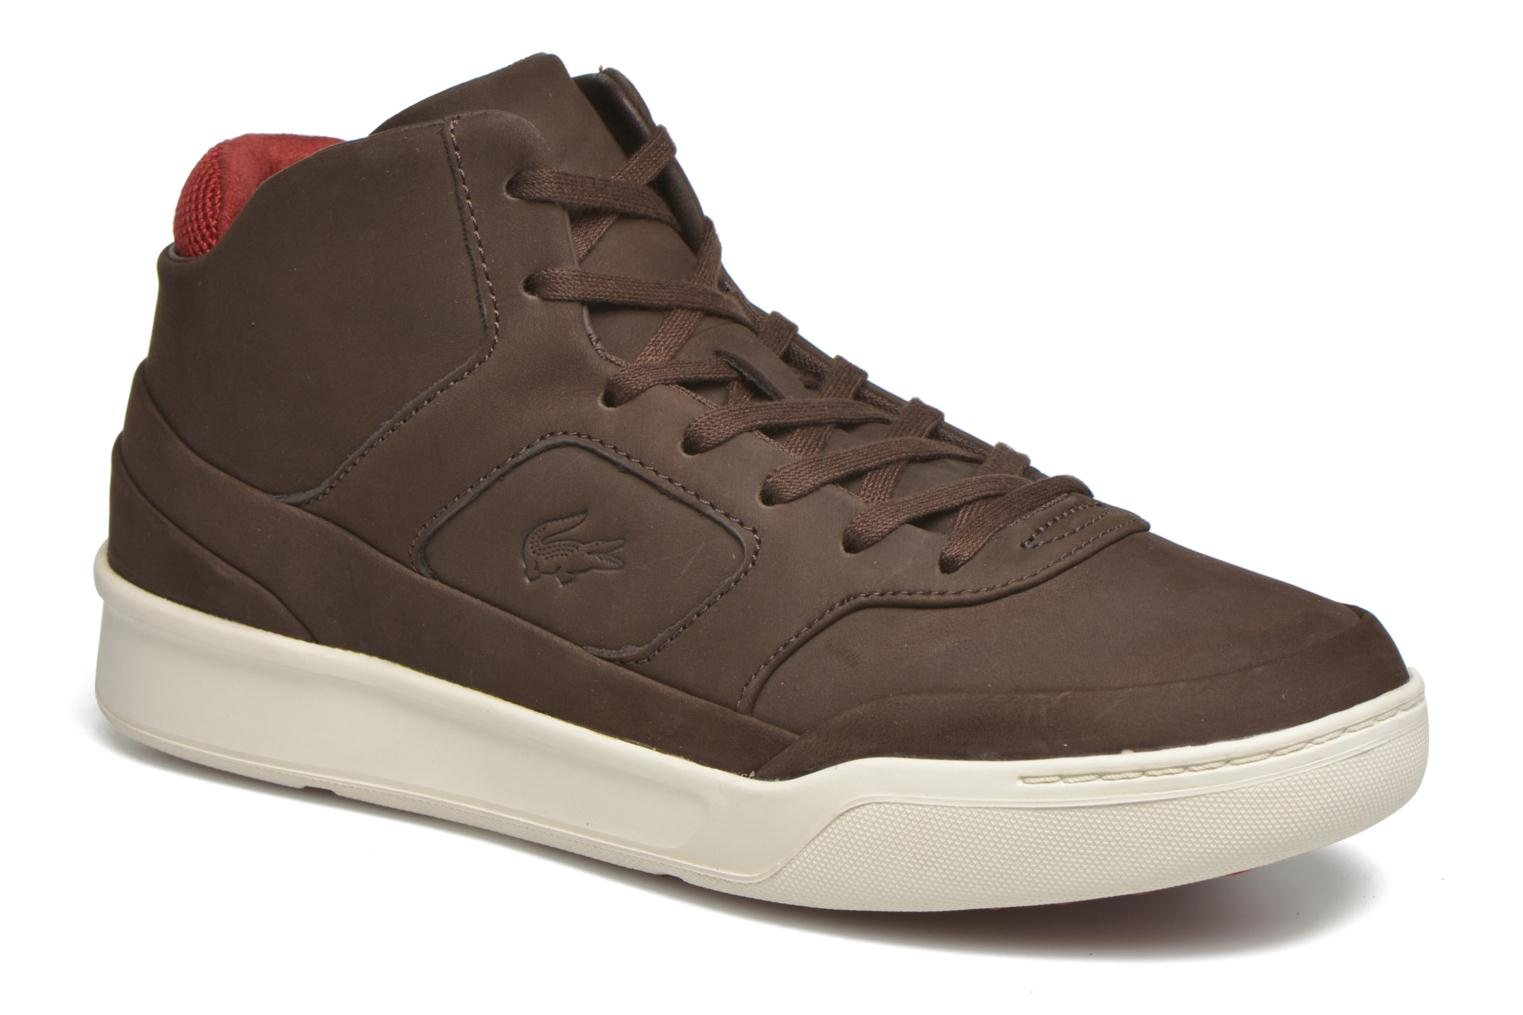 Baskets Lacoste Explorateur Mid 416 1 Marron vue détail/paire